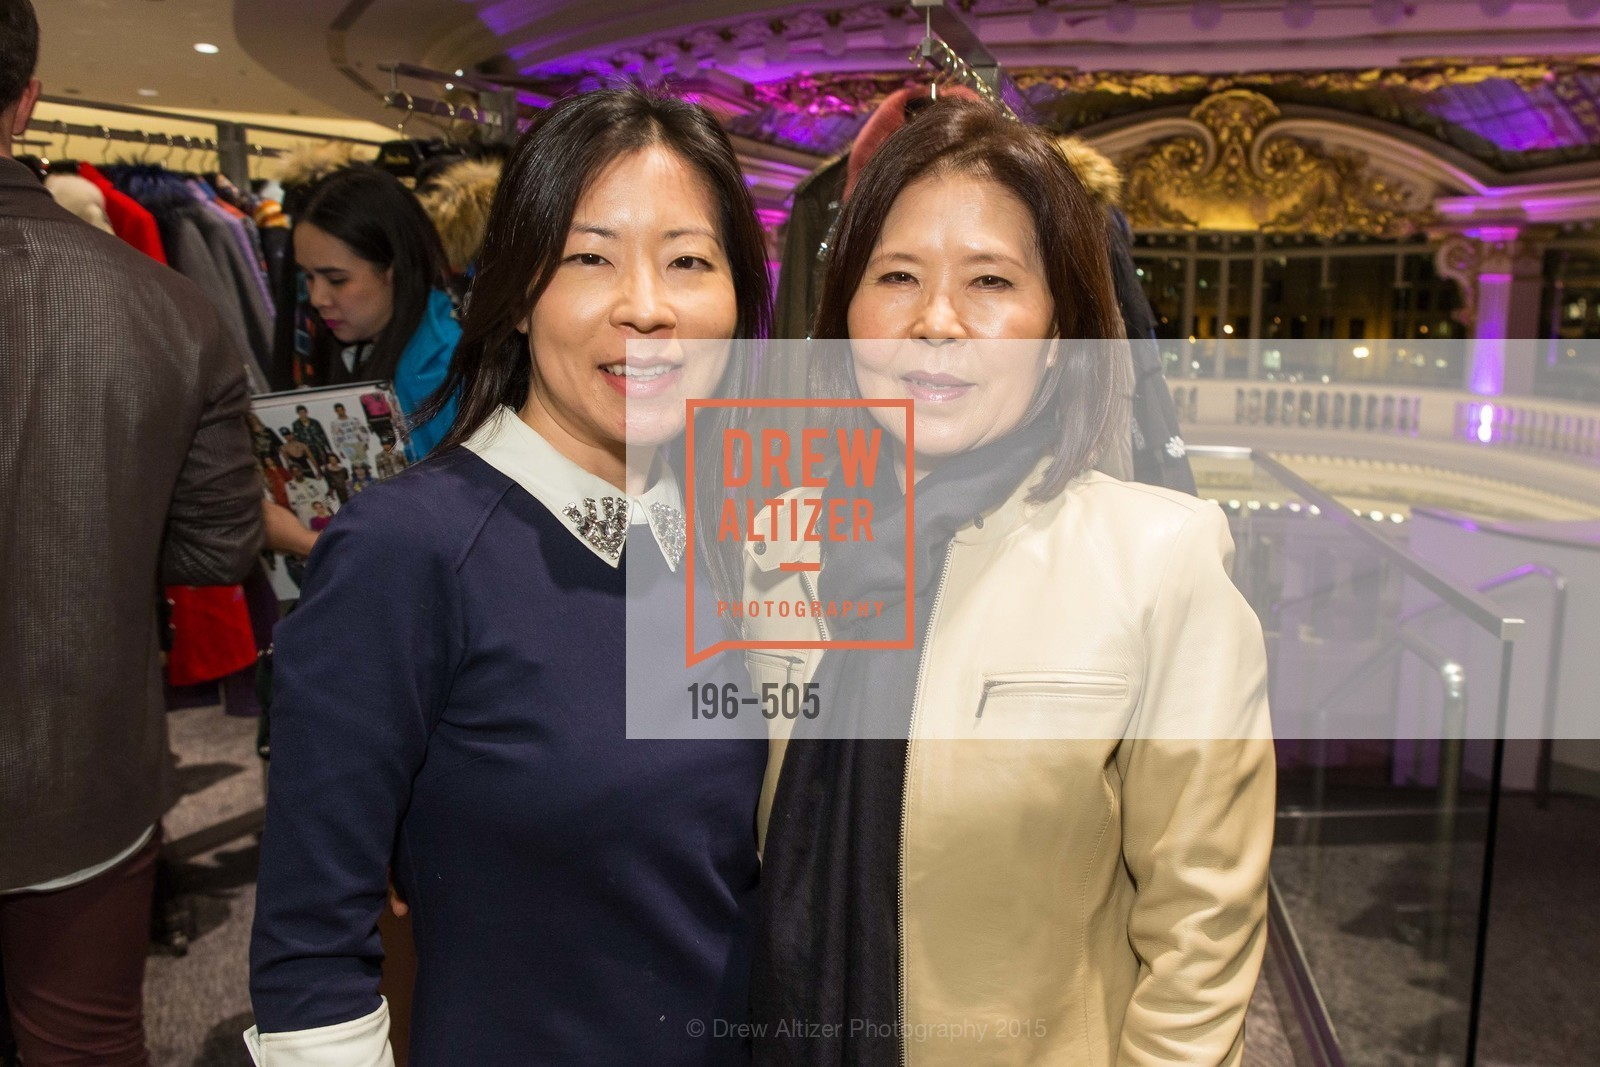 Melody Dippold, Kay Kang, Libertine Cocktail Party at Neiman Marcus, Neiman Marcus, November 10th, 2015,Drew Altizer, Drew Altizer Photography, full-service agency, private events, San Francisco photographer, photographer california